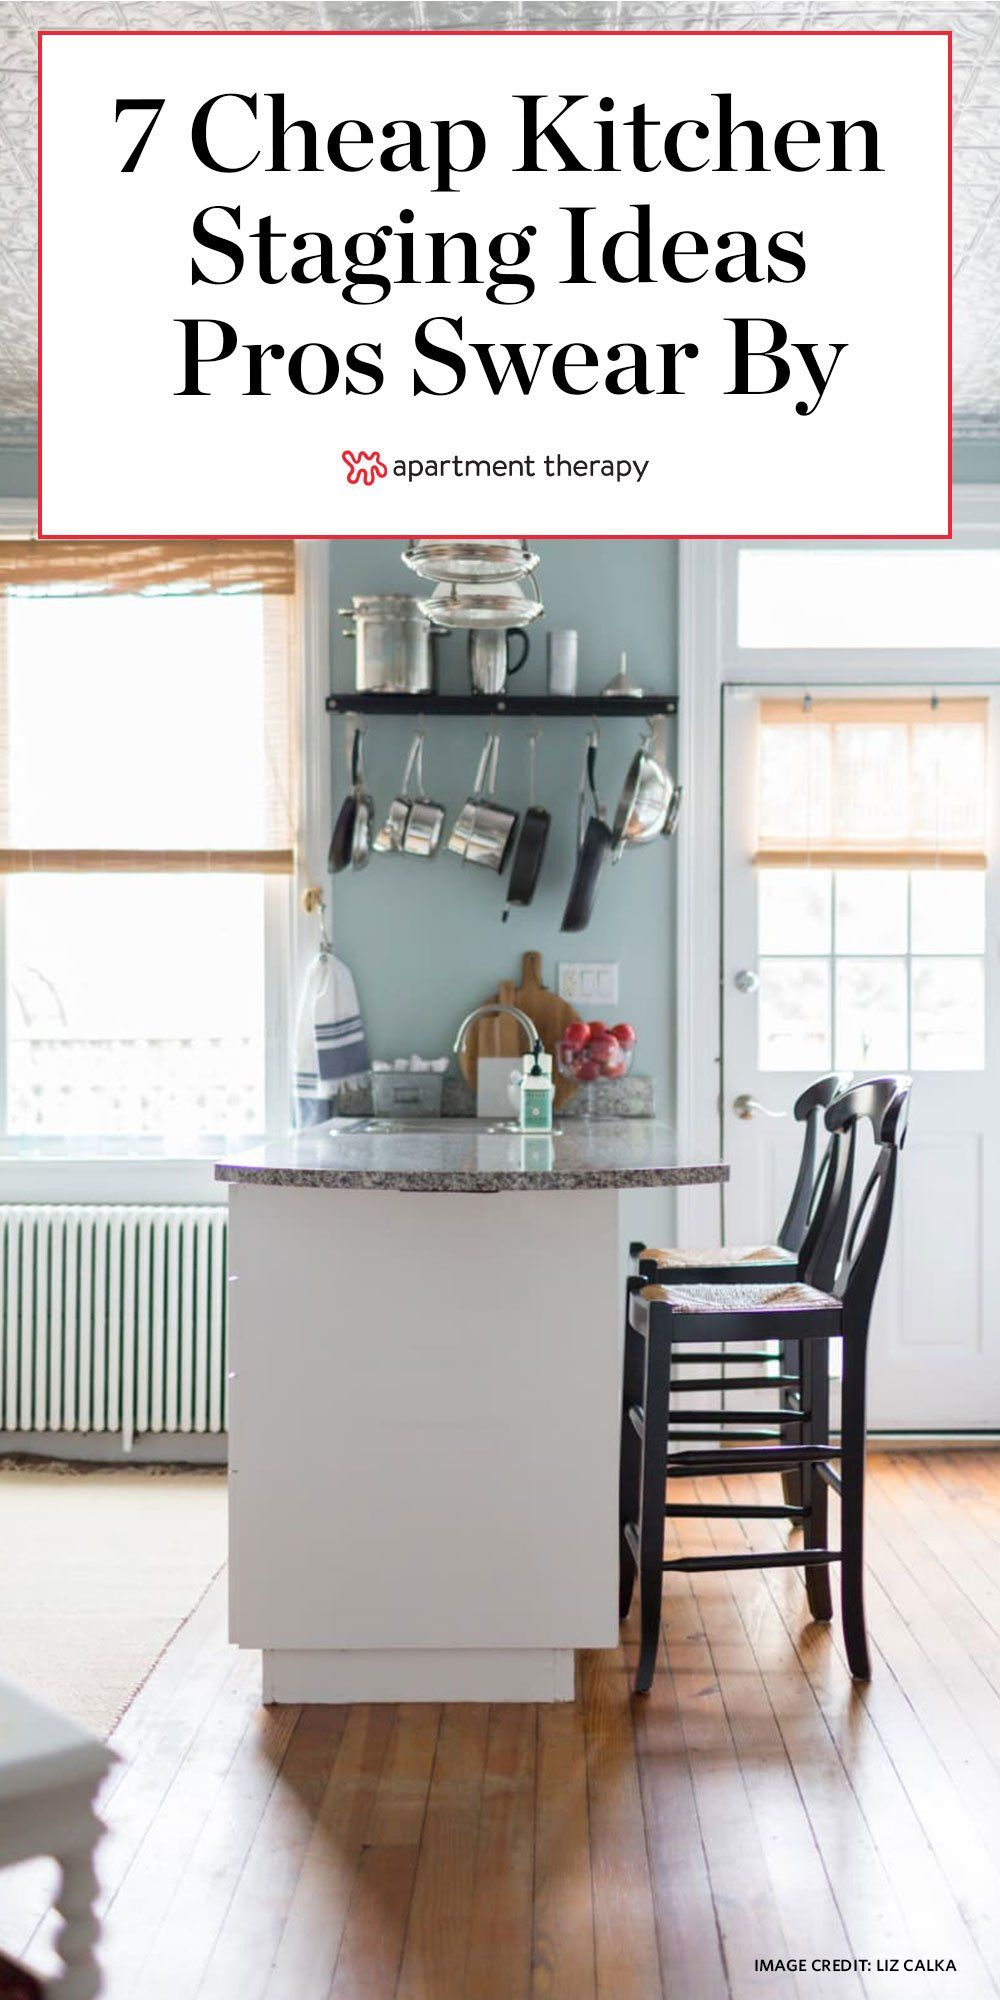 7 Low Cost Or Free Kitchen Staging Ideas Real Estate Experts Swear By In 2020 Kitchen Staging Cheap Kitchen